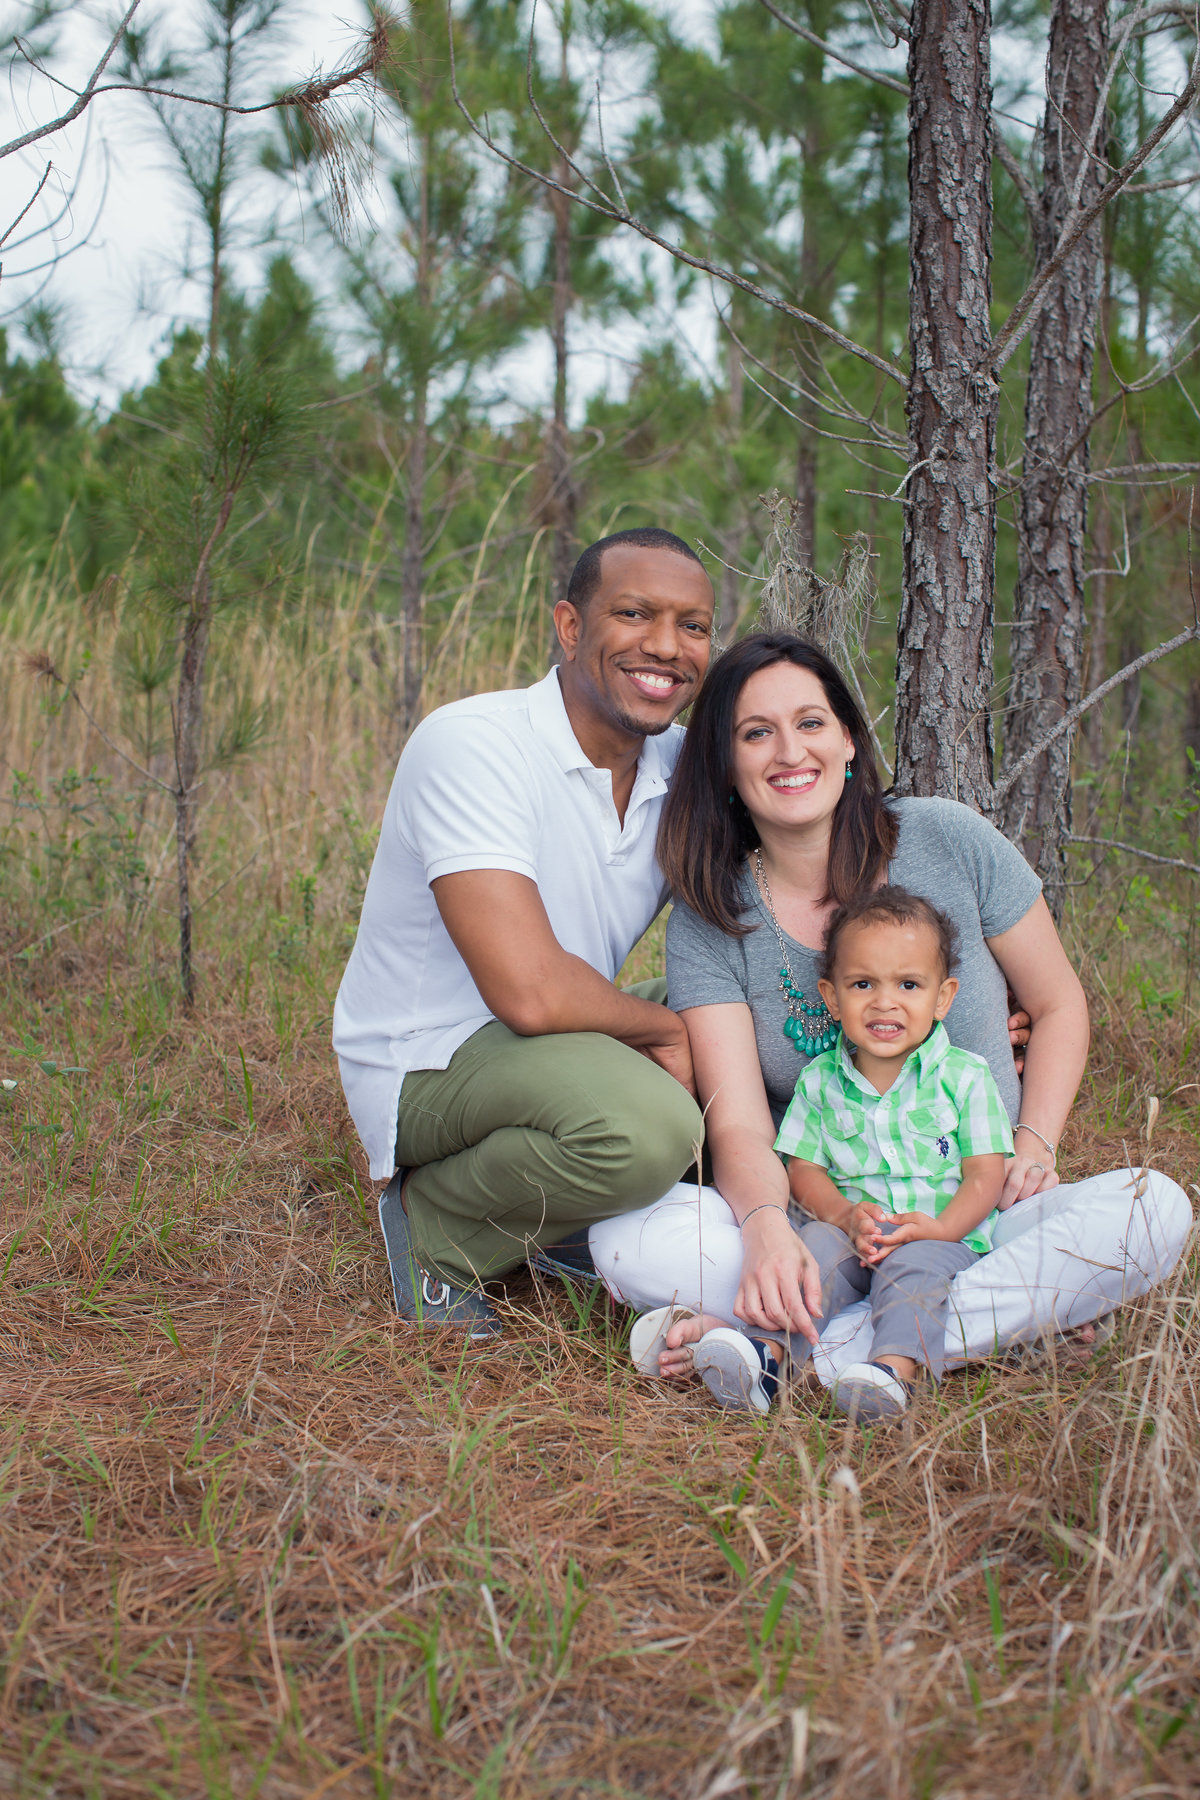 Oakleaf-Spring-Family-Photos-Jessica-Lea-IMG_8963